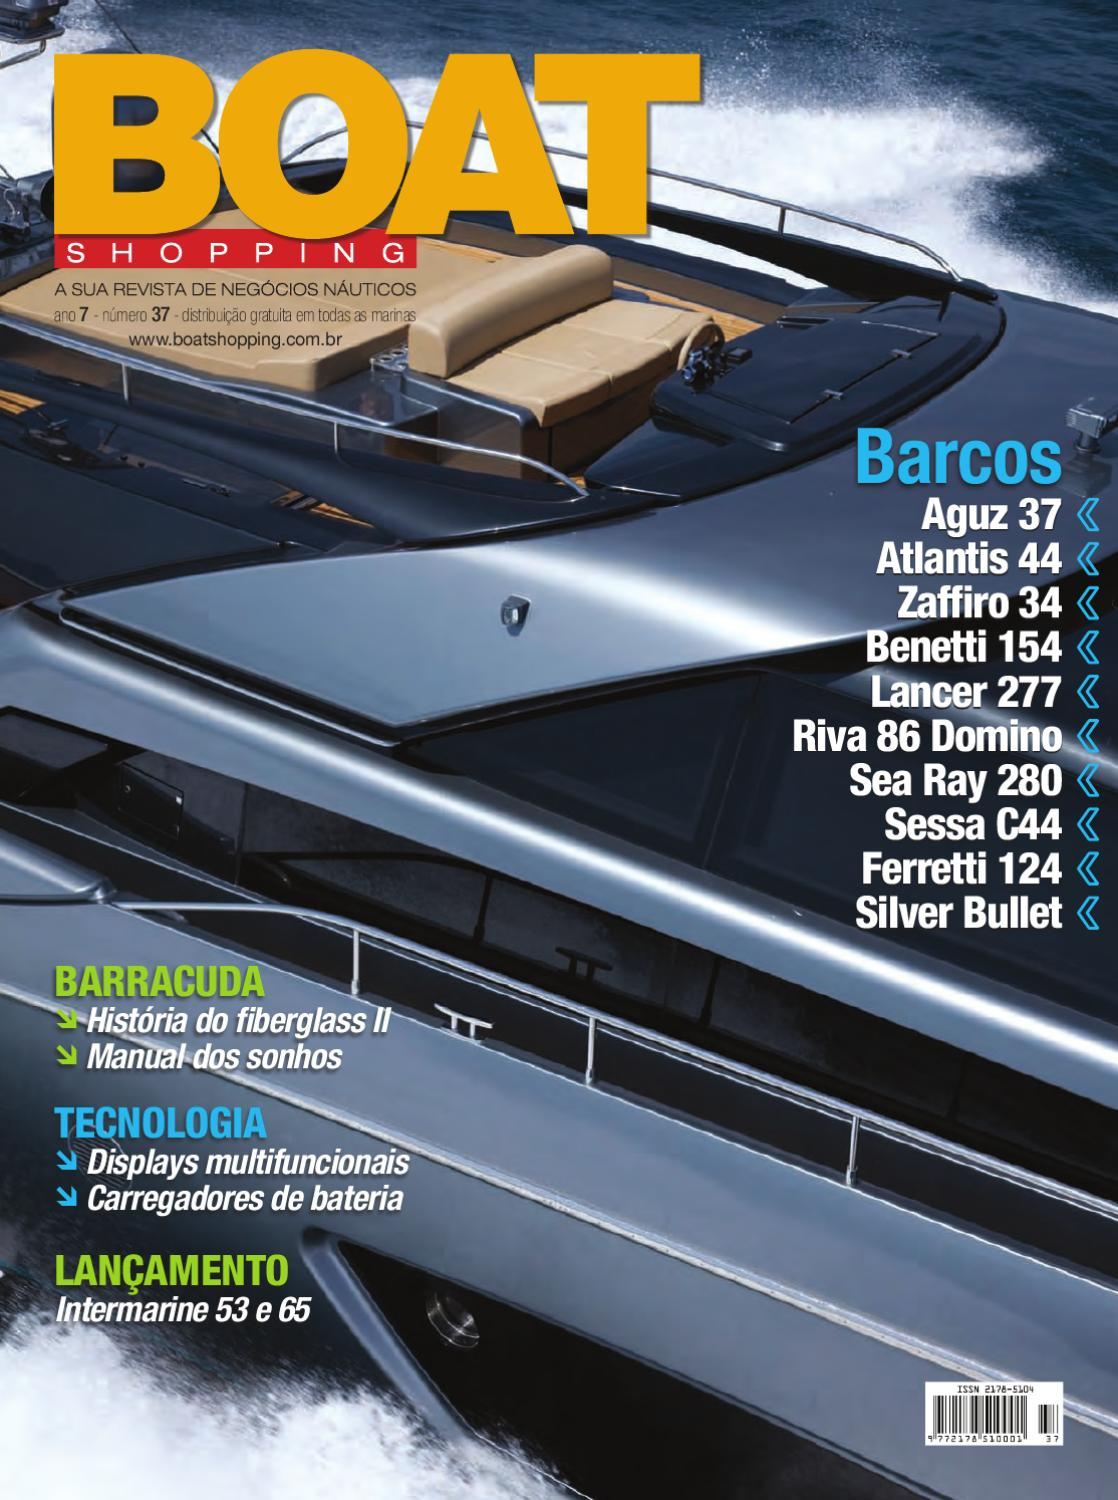 Revista Boat Shopping #38 by Boat Shopping - issuu